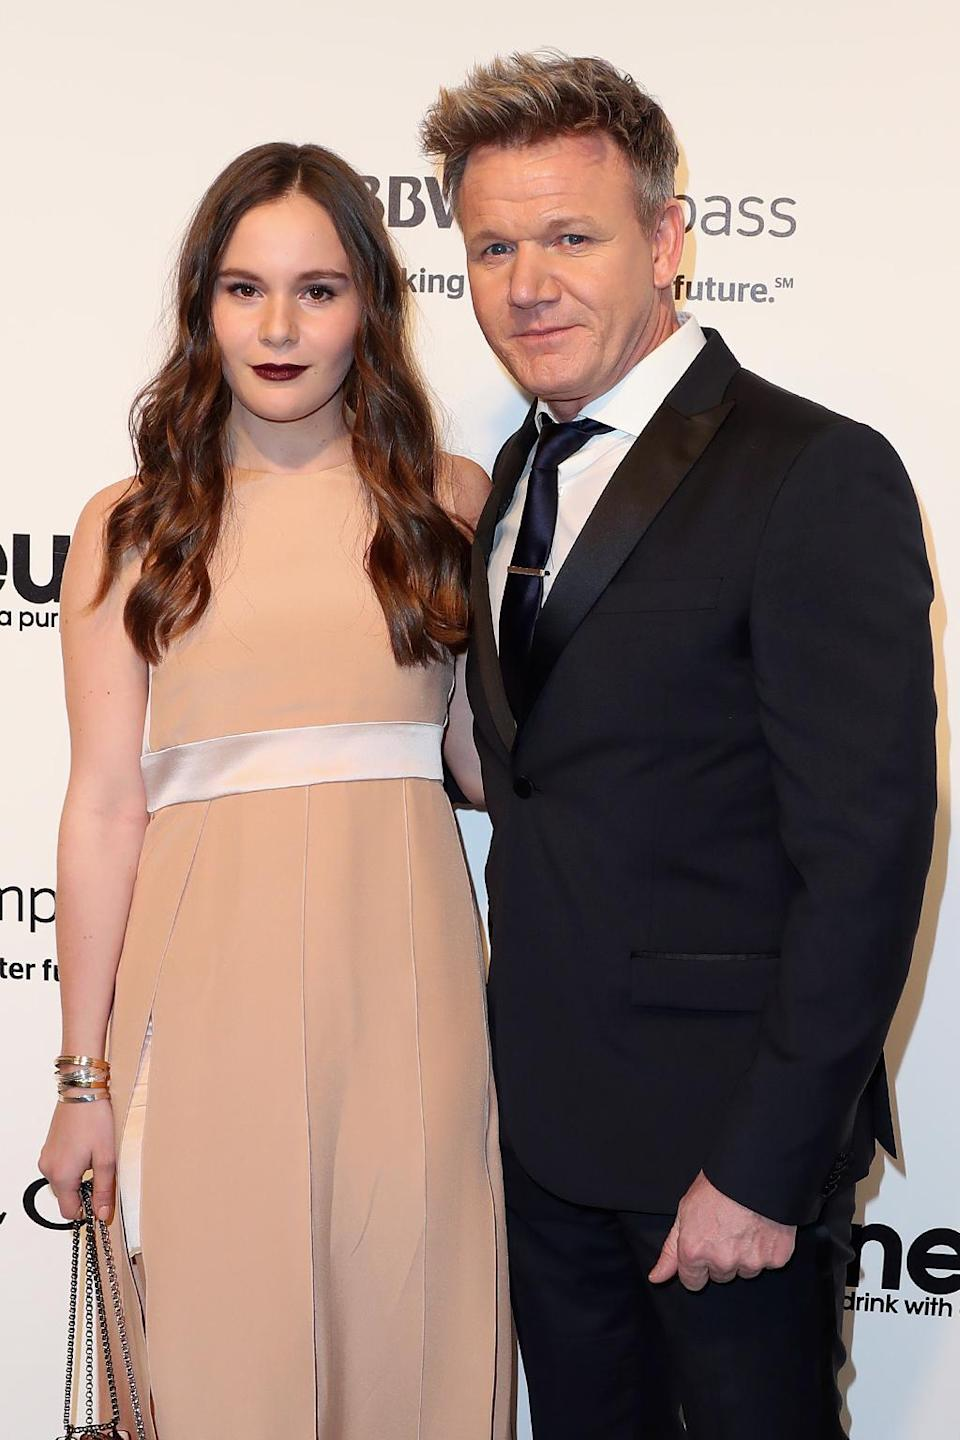 <p>TV Personality Gordon Ramsay (R) and Holly Anna Ramsay (L) attends the 25th Annual Elton John AIDS Foundation's Oscar Viewing Party at The City of West Hollywood Park on February 26, 2017 in West Hollywood, California. (Photo by Frederick M. Brown/Getty Images) </p>